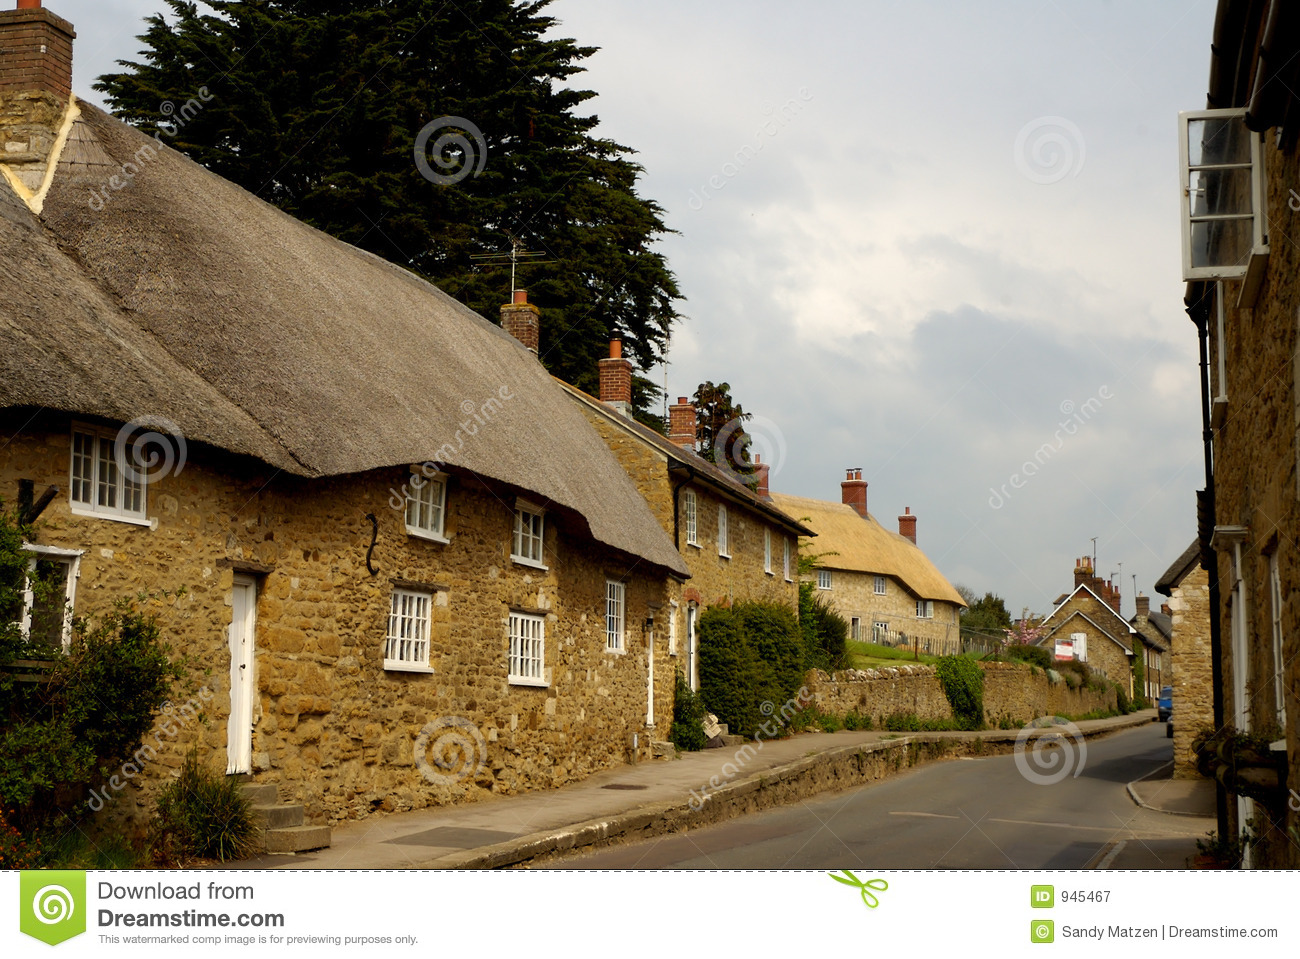 Roof thatached cottages